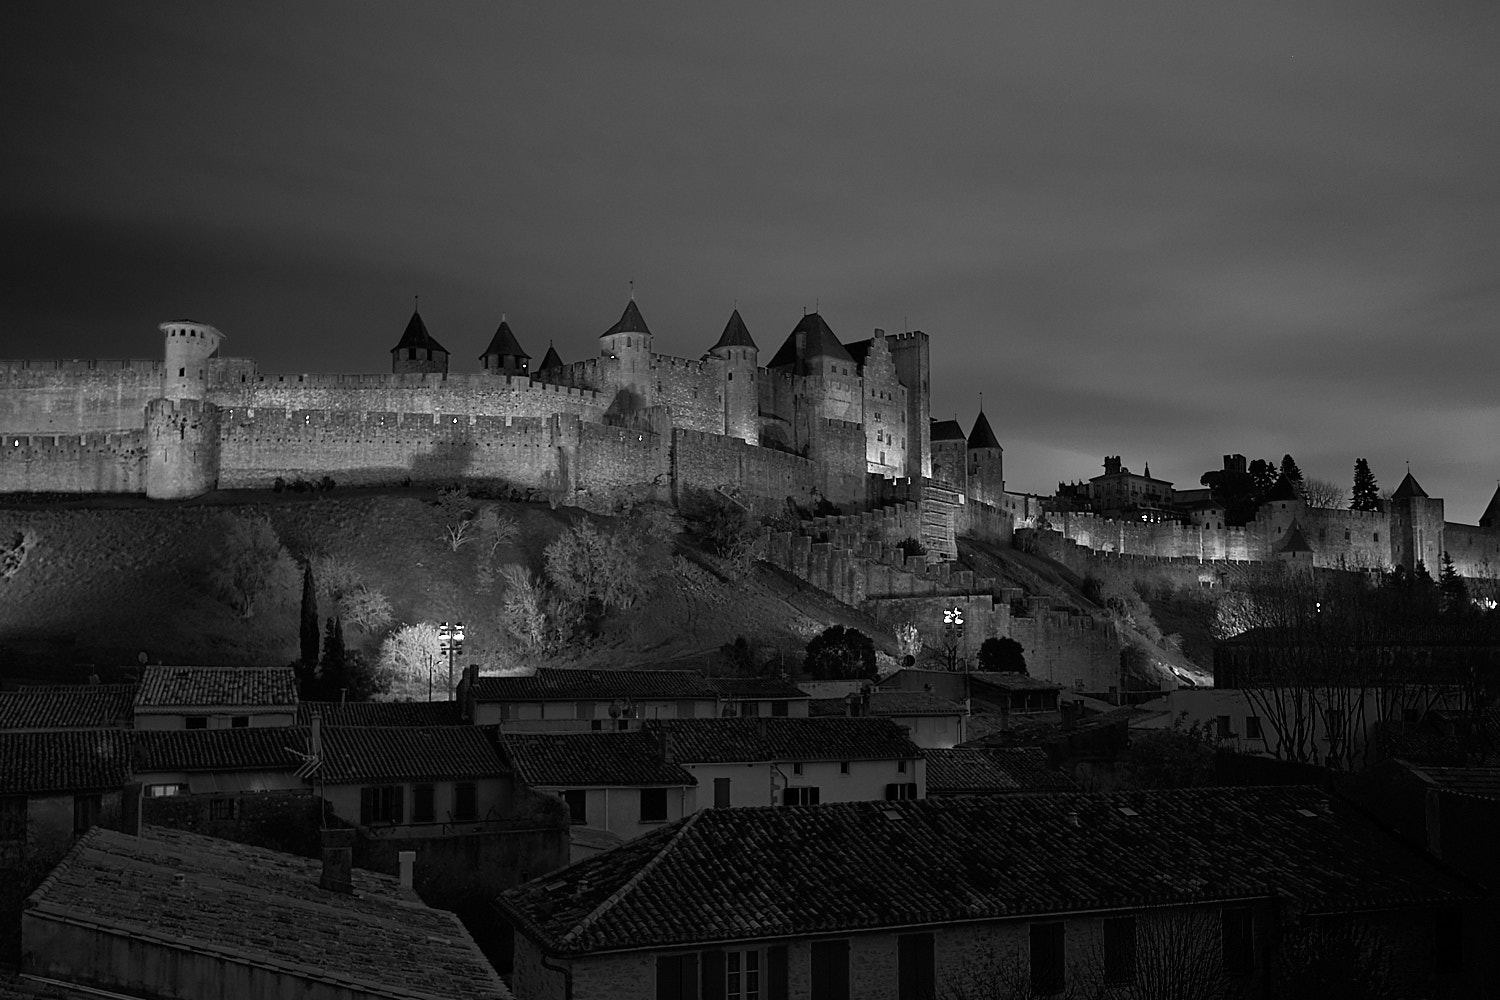 Night view of the fortress city of Carcassone in south France